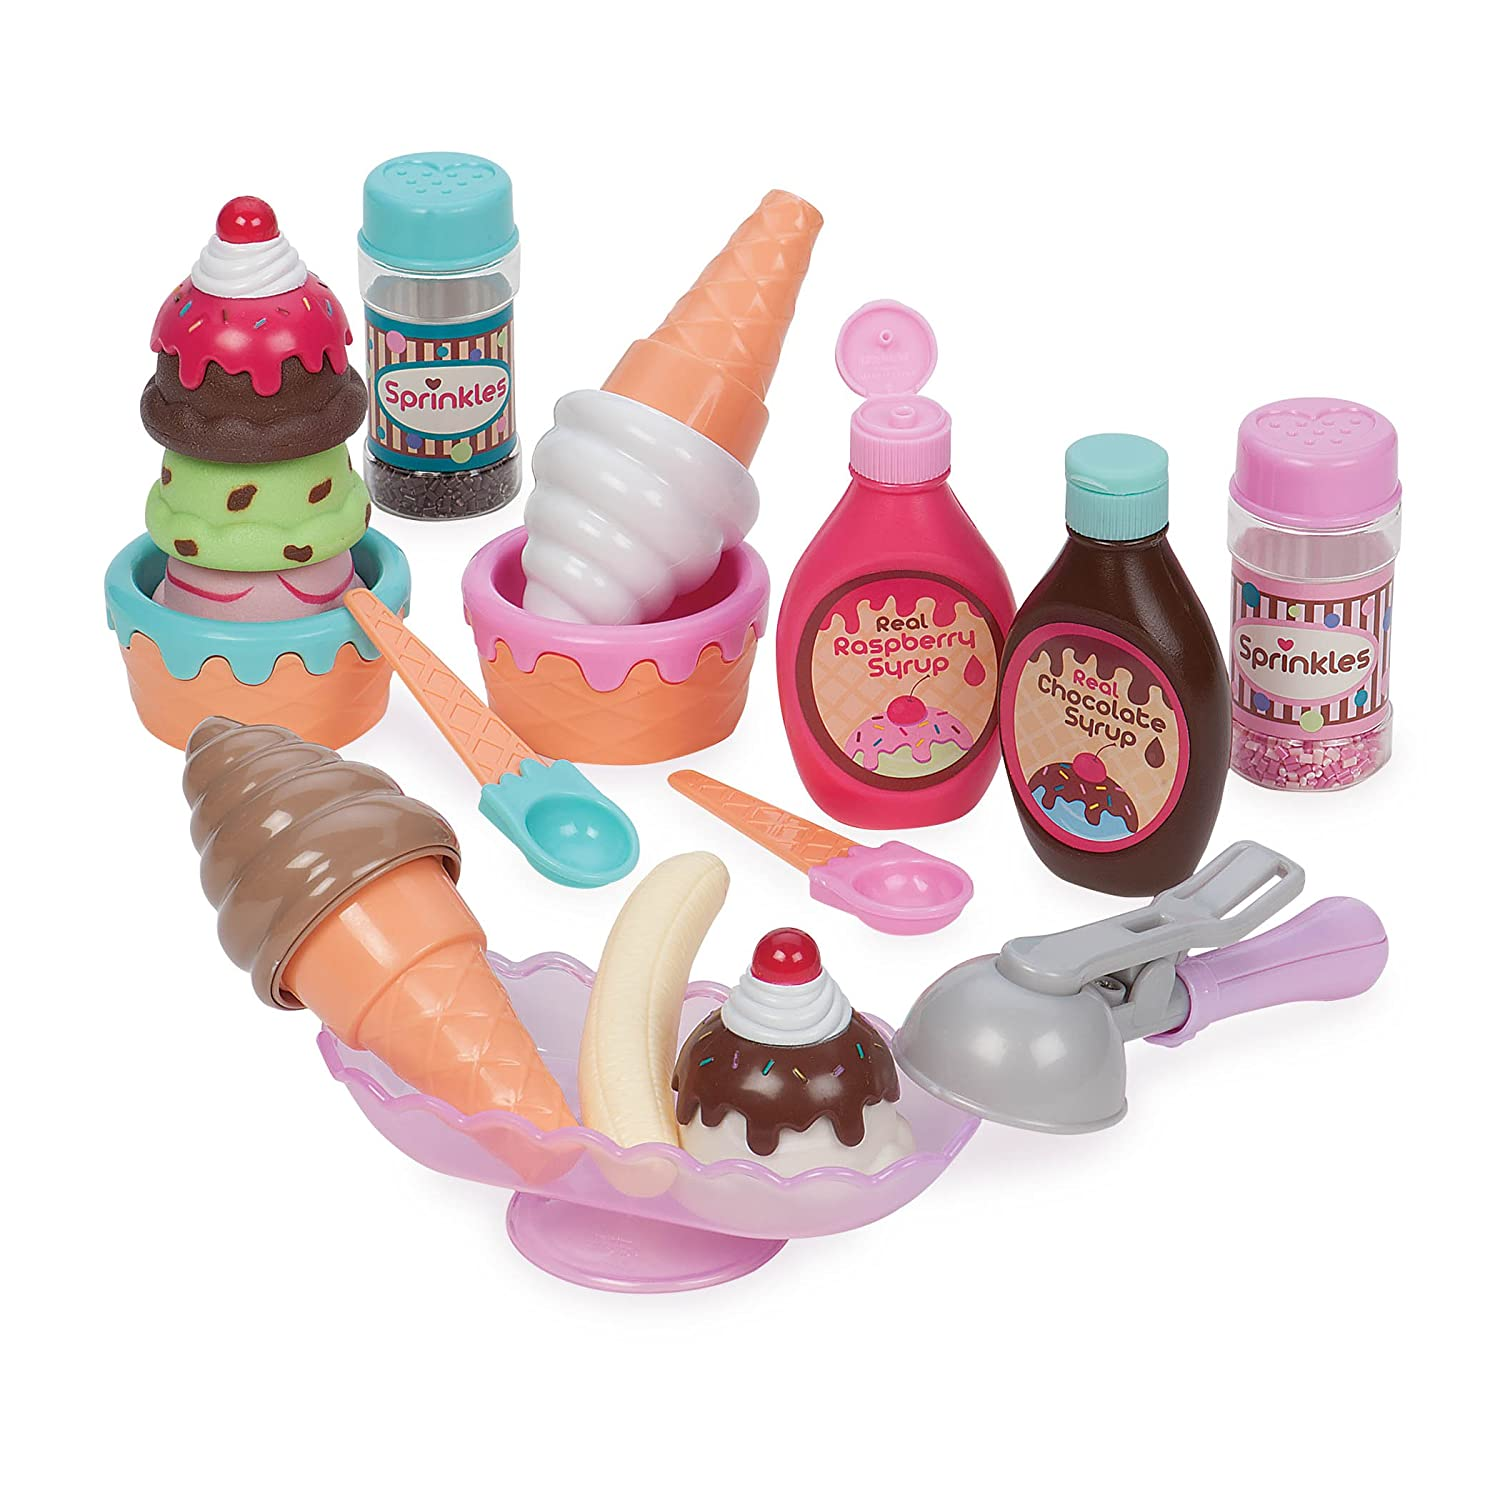 Play Circle by Battat – Sweet Treats Ice Cream Parlour – 21-piece Pretend Ice Cream Set for Kids – Pretend Play Food Sets for Toddlers Age 3 Years and Up